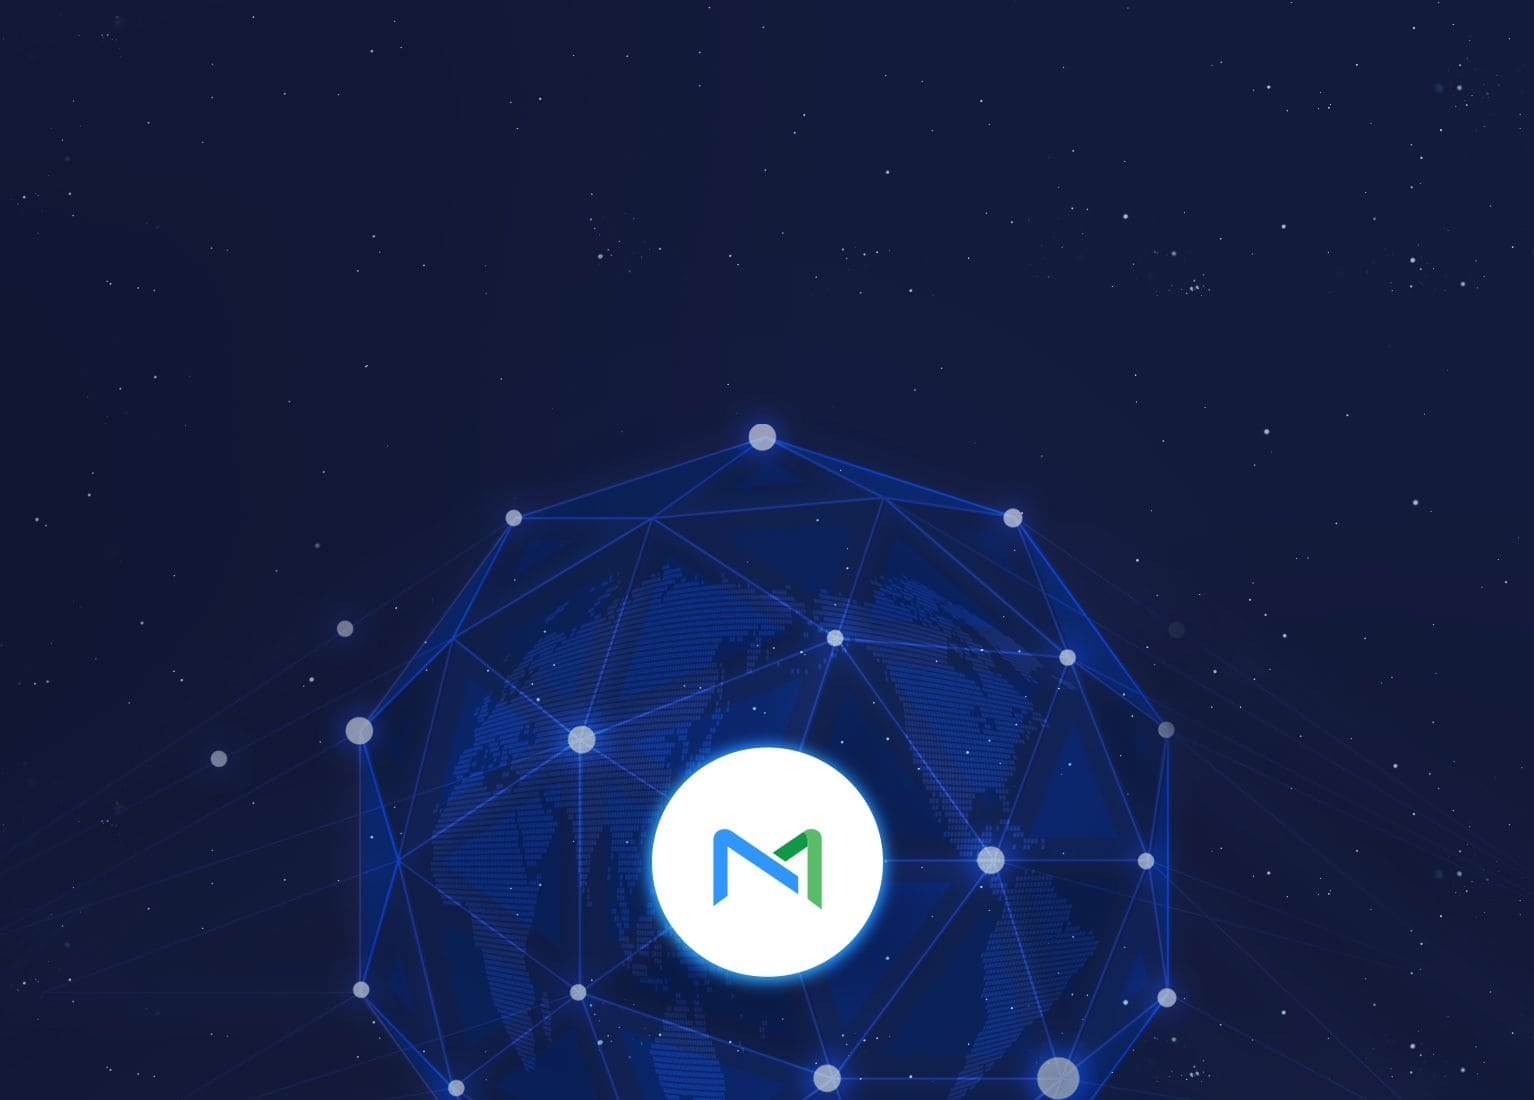 MagicINFO 7 background image